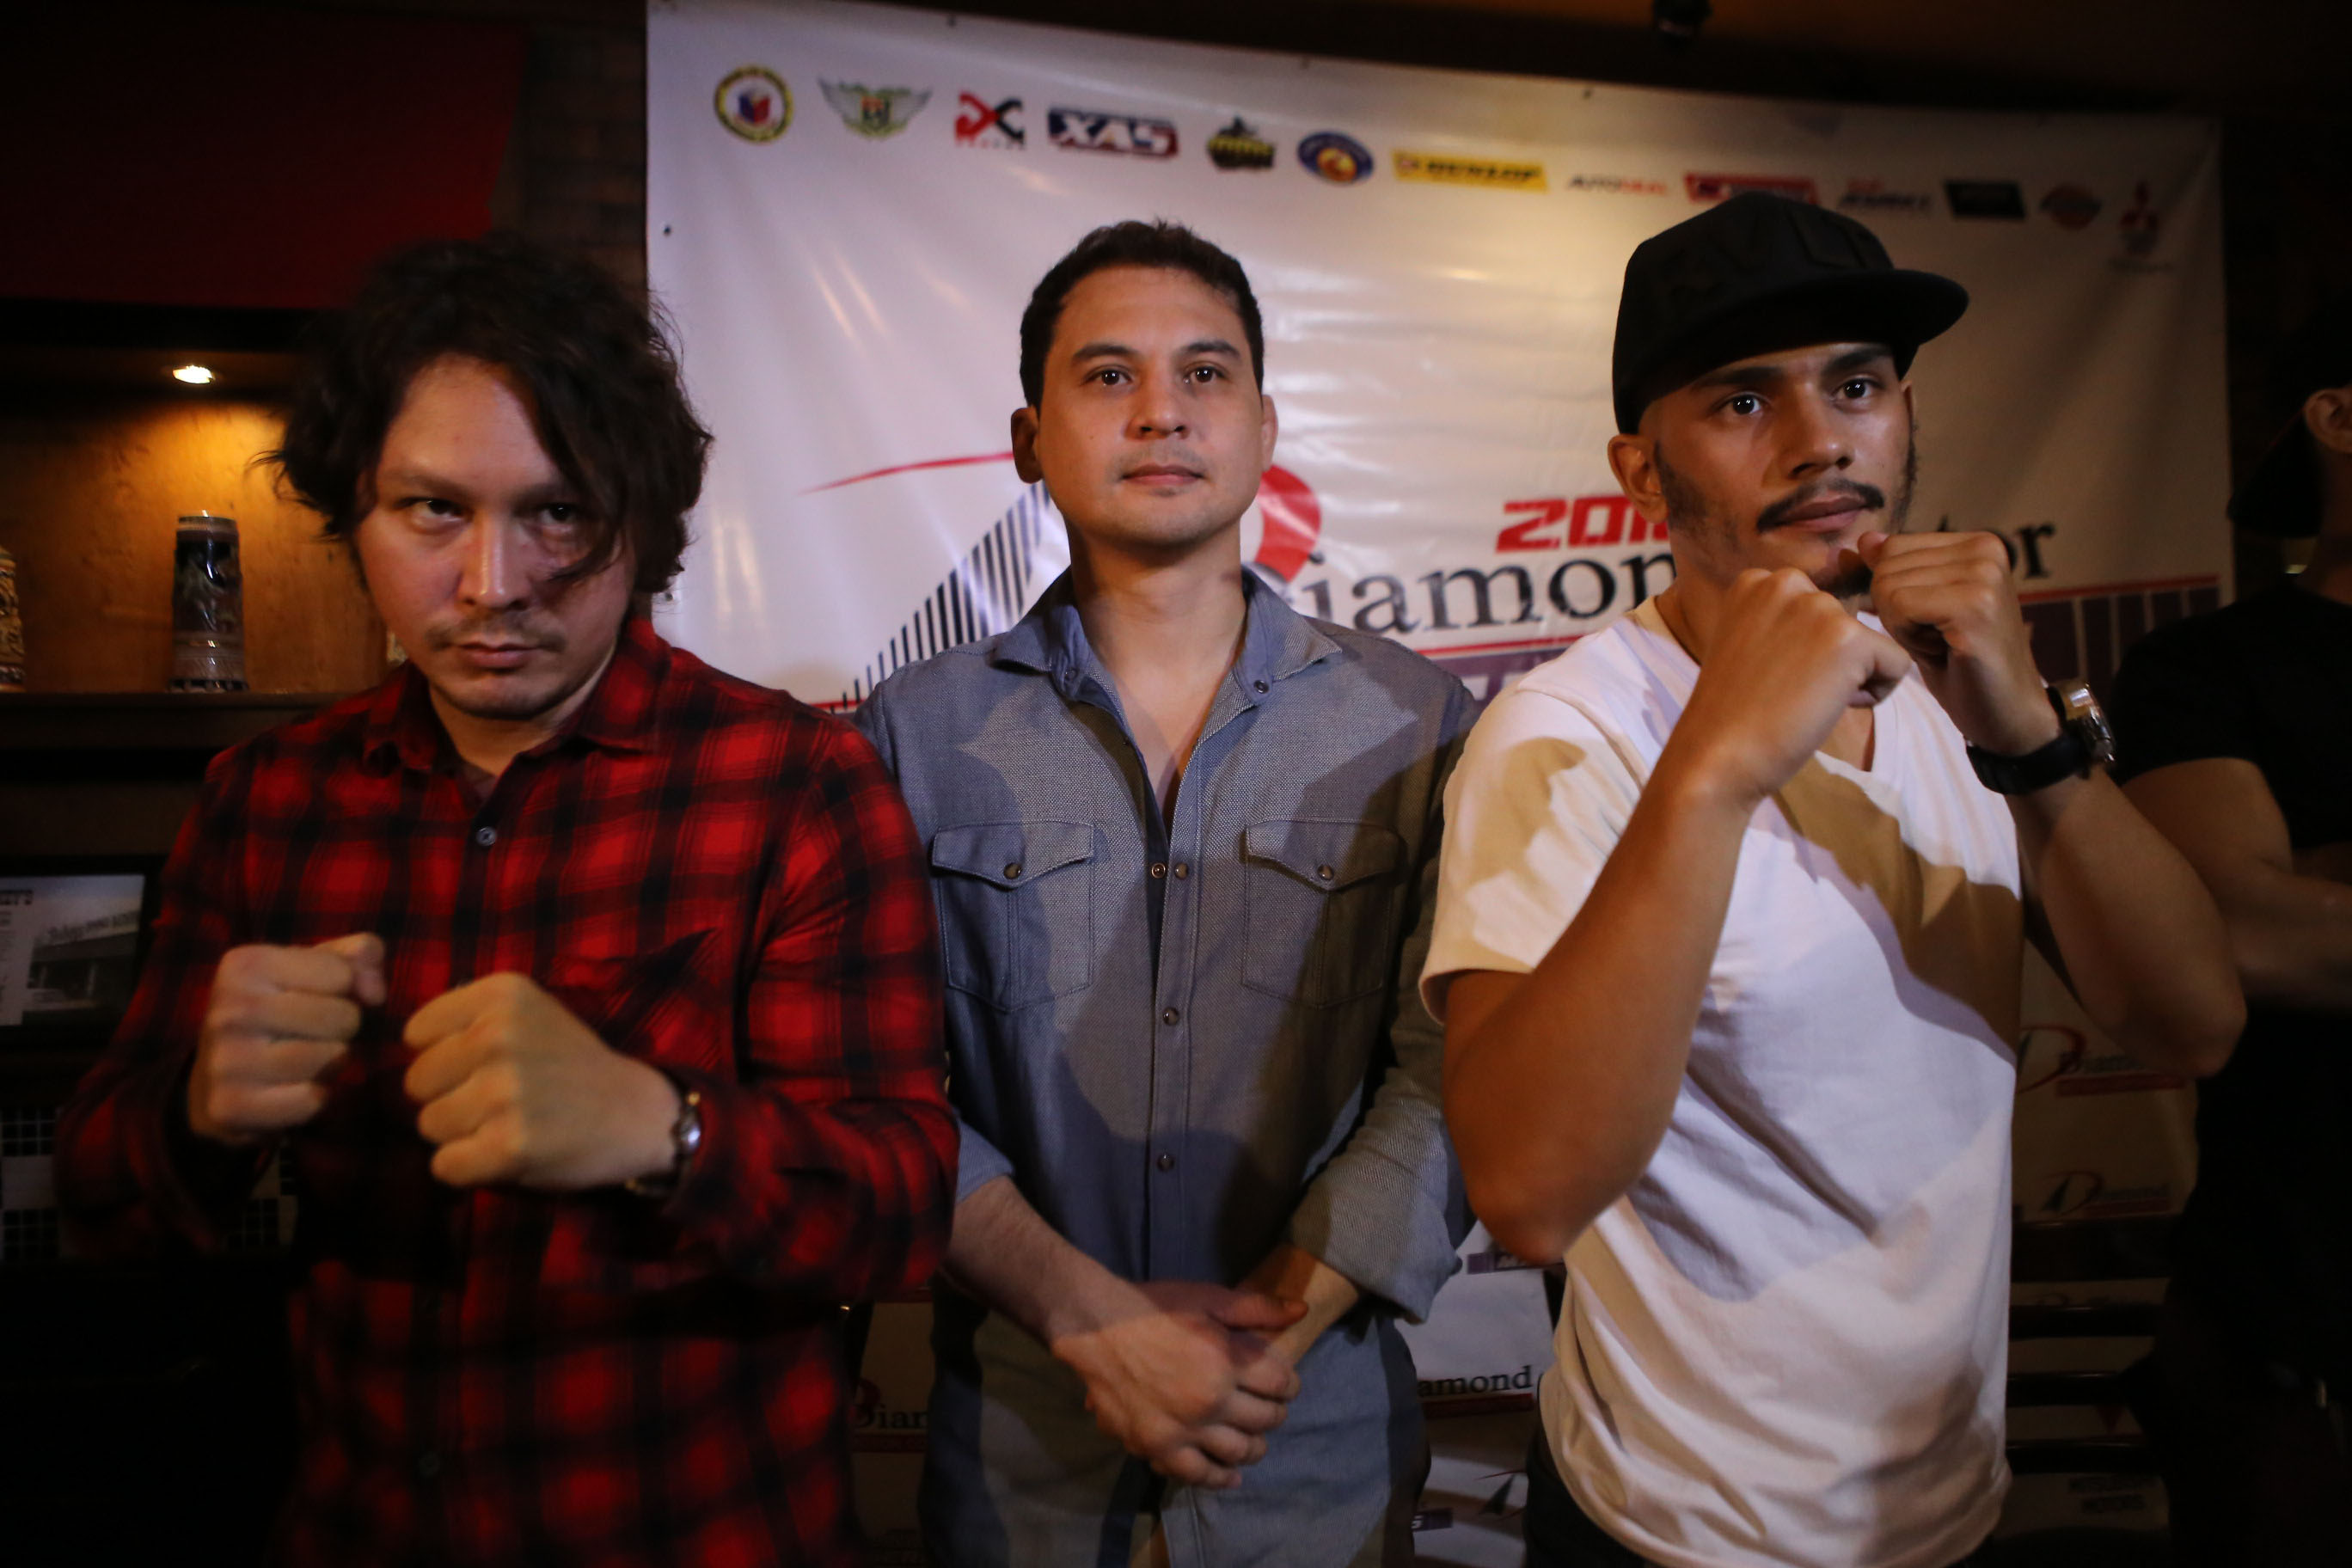 IT'S ON. An MMA match will settle the beef  between Geisler and Matos that started with an altercation at a Quezon City bar. Photo by Josh Albelda/Rappler